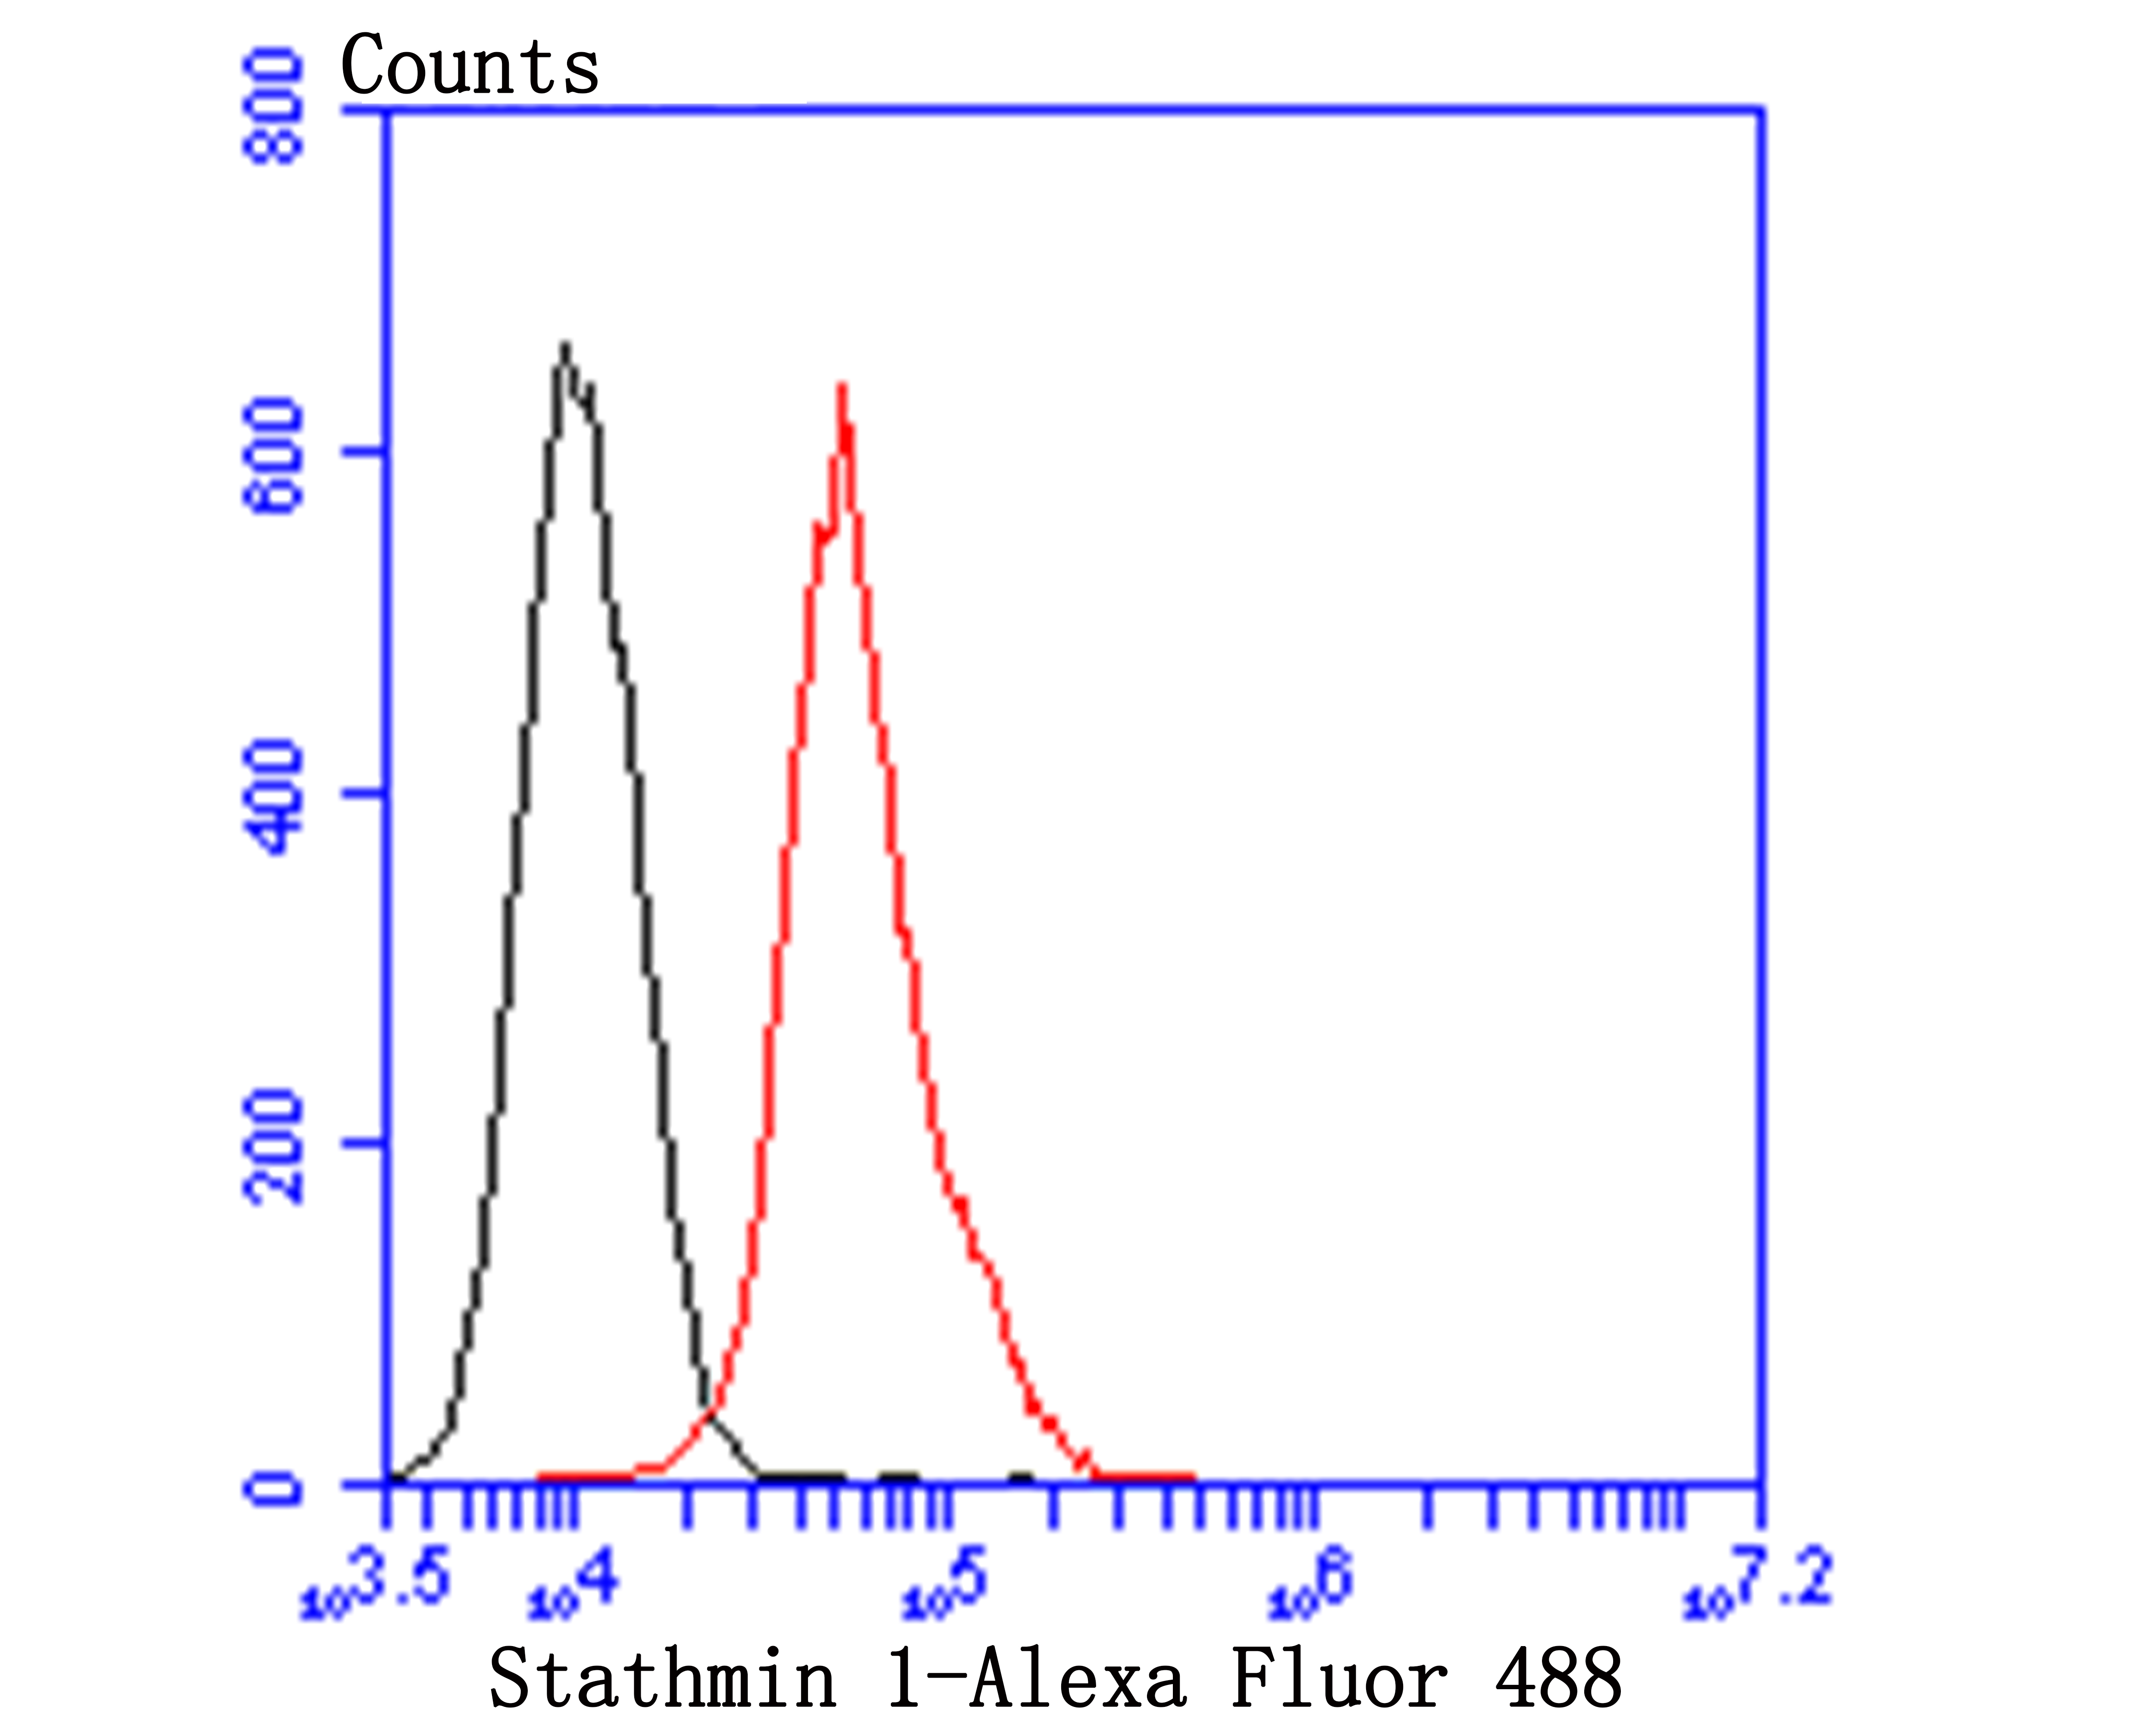 Flow cytometric analysis of Stathmin 1 was done on MG-63 cells. The cells were fixed, permeabilized and stained with Ki67 antibody at 1/100 dilution (red) compared with an unlabelled control (cells without incubation with primary antibody; black). After incubation of the primary antibody on room temperature for an hour, the cells was stained with a Alexa Fluor™ 488-conjugated goat anti-mouse IgG Secondary antibody at 1/500 dilution.